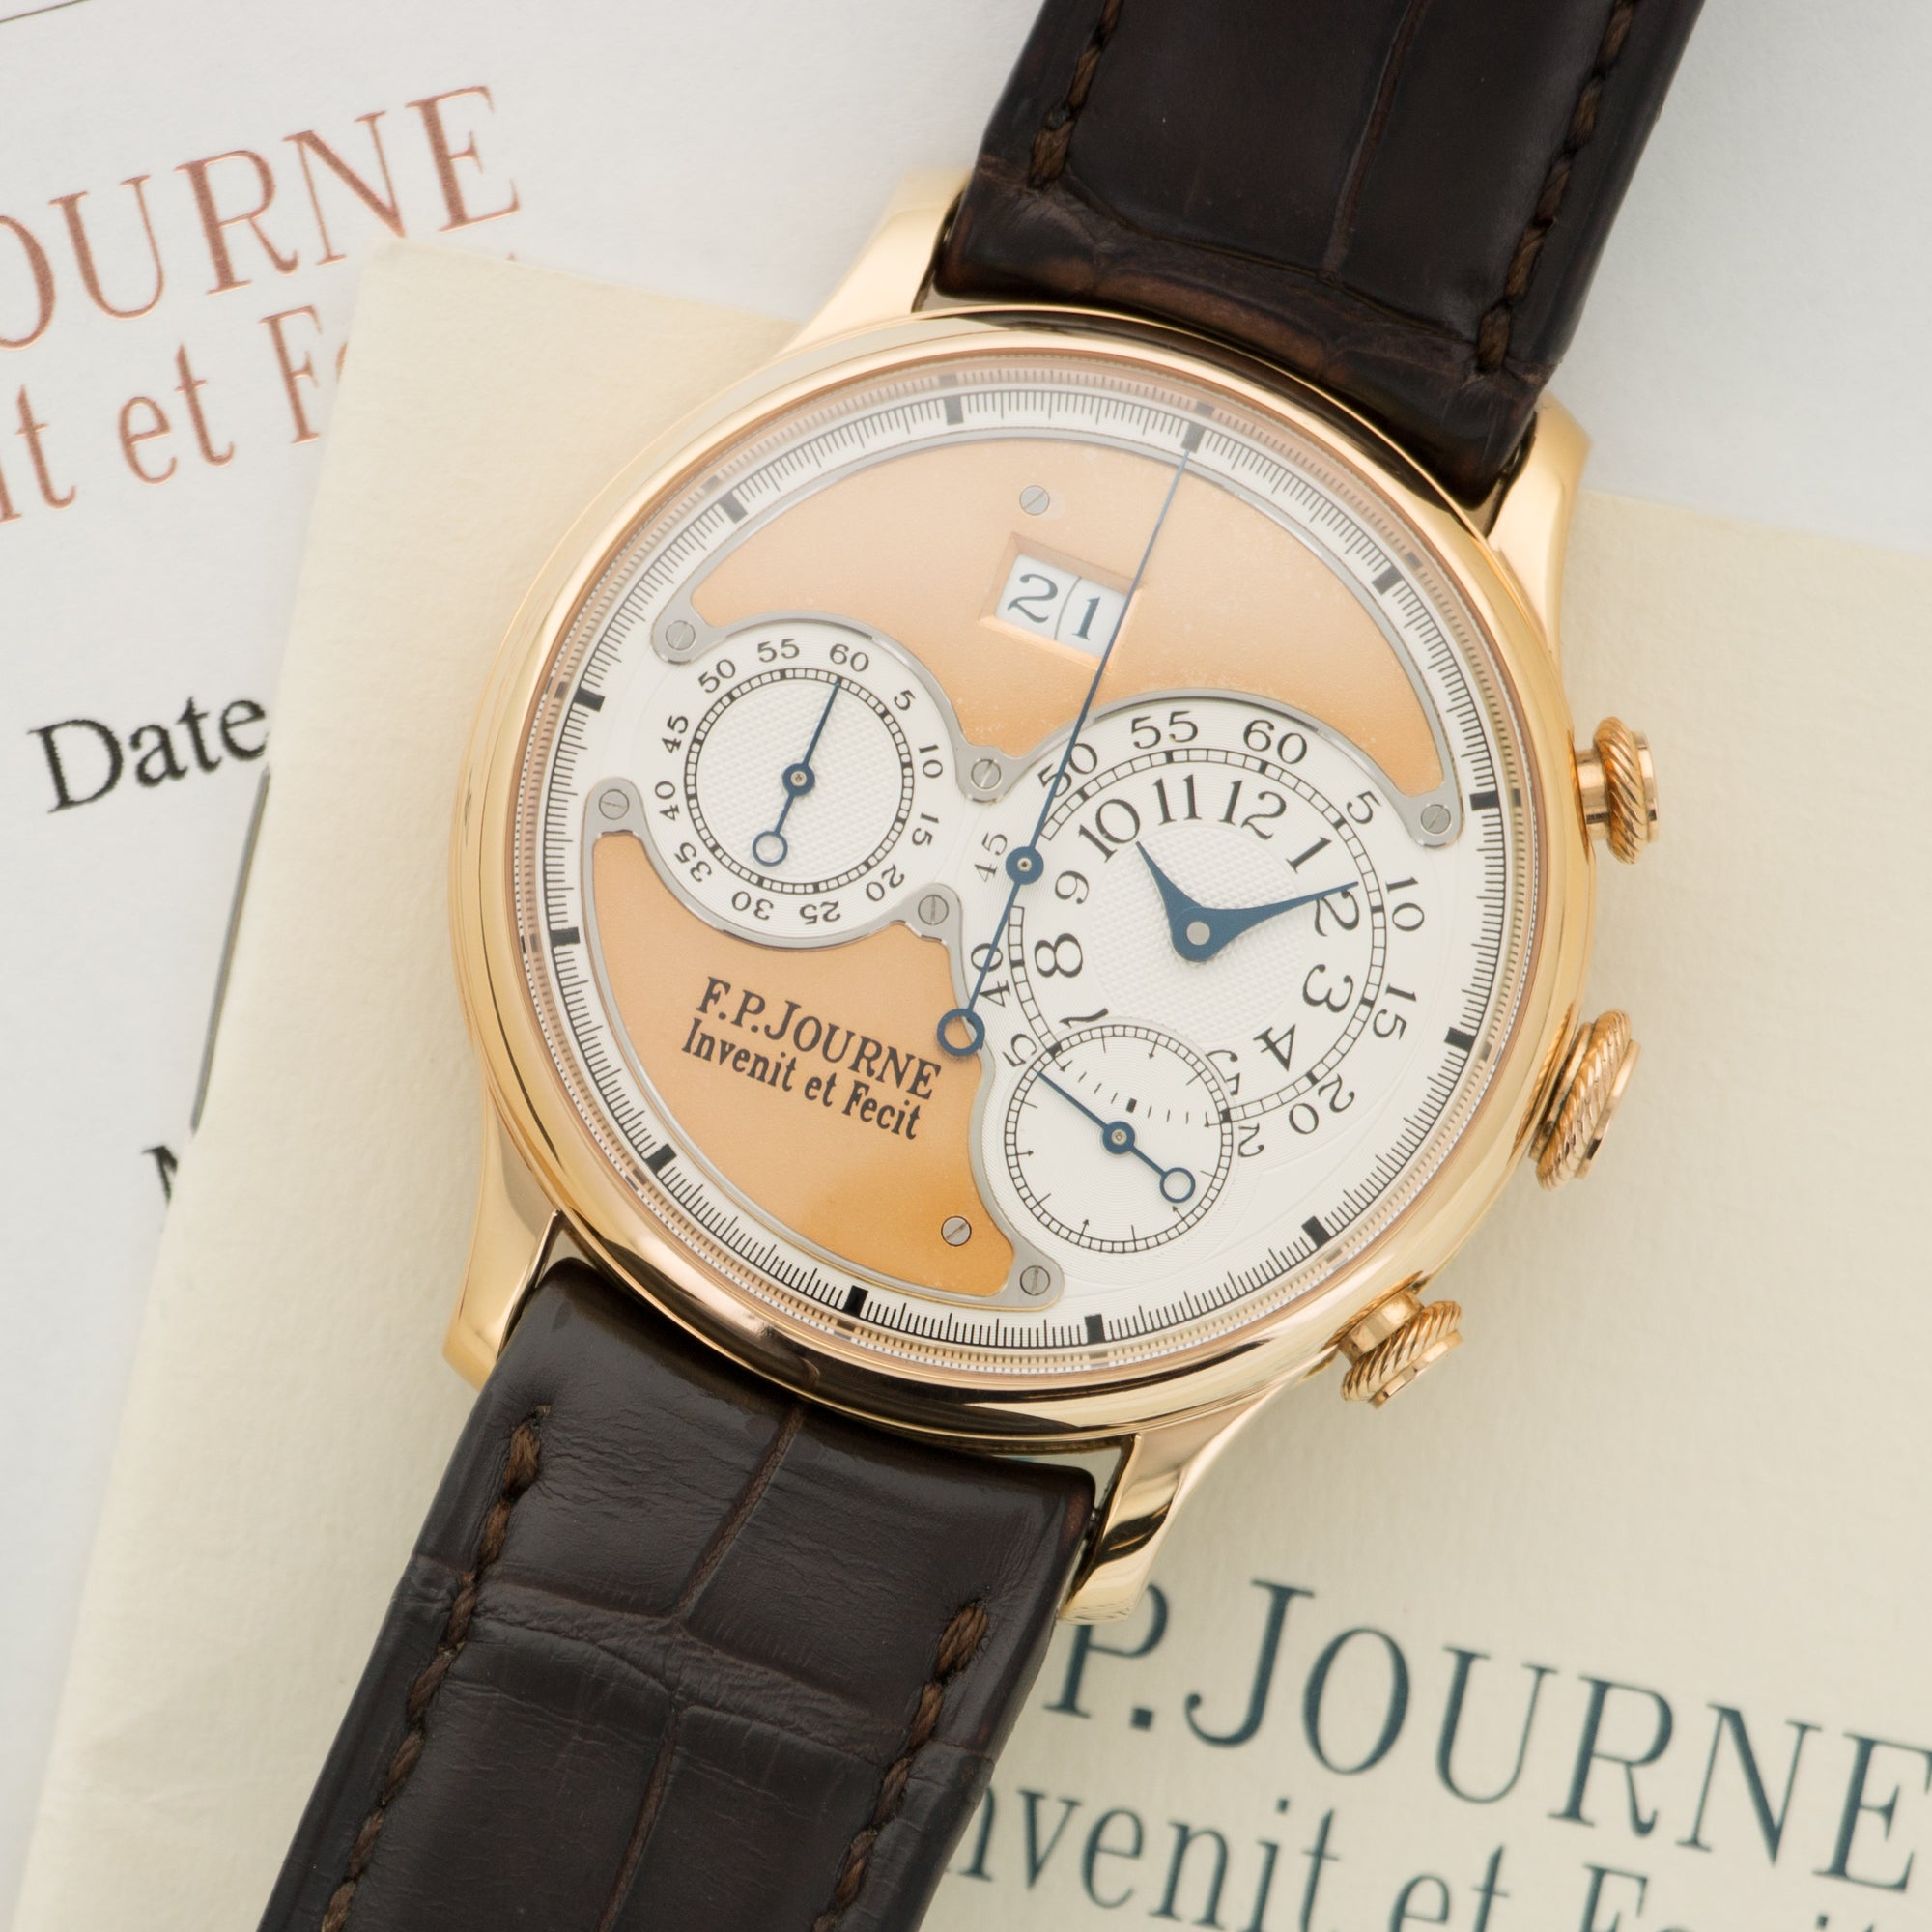 FP Journe Octa Chrono N/A 18k RG  Likely Never Polished, Original Finish Gents 18k RG Rose Gold 38mm Automatic 2011 Dark Brown Crocodile Original Box and Certificate